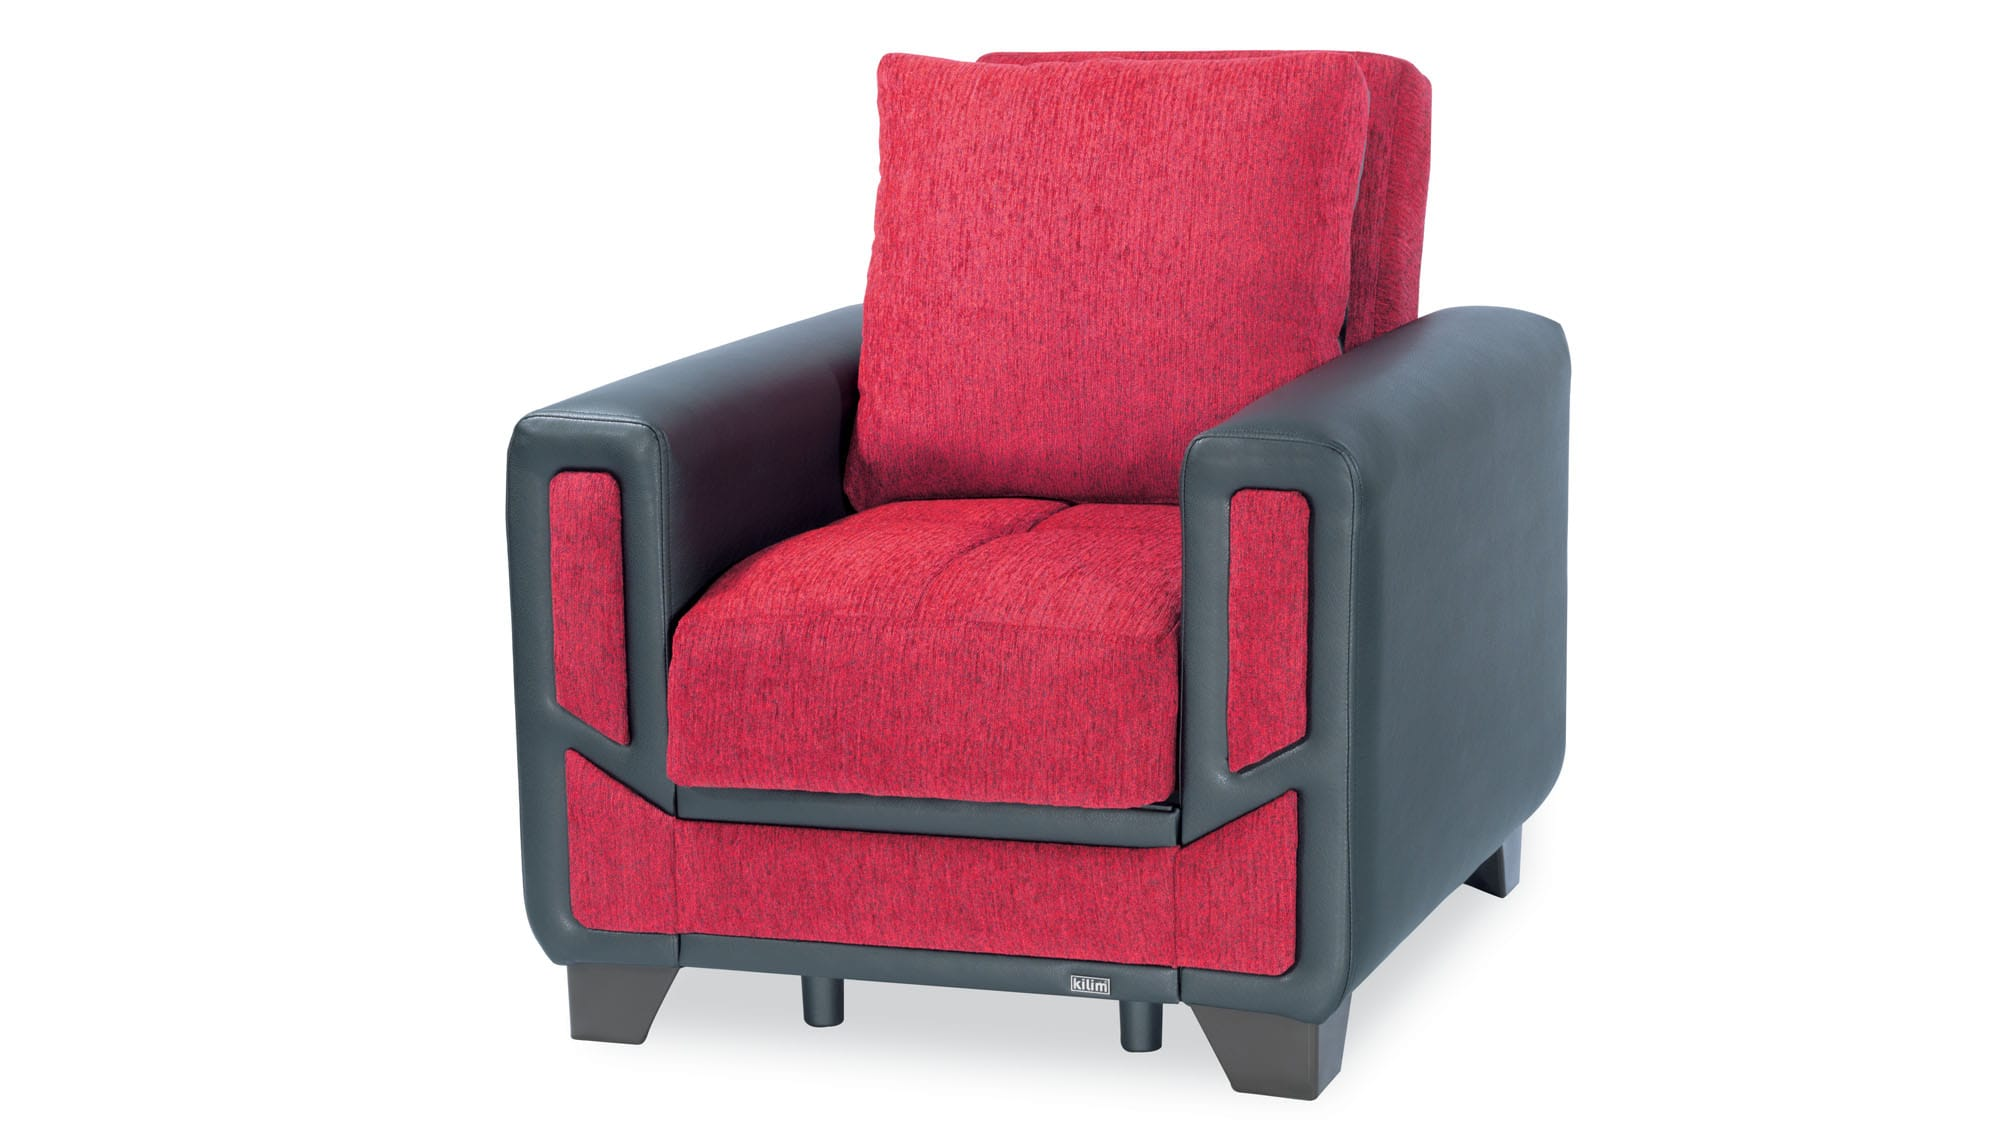 Surprising Mondo Modern Red Convertible Chair By Casamode Short Links Chair Design For Home Short Linksinfo